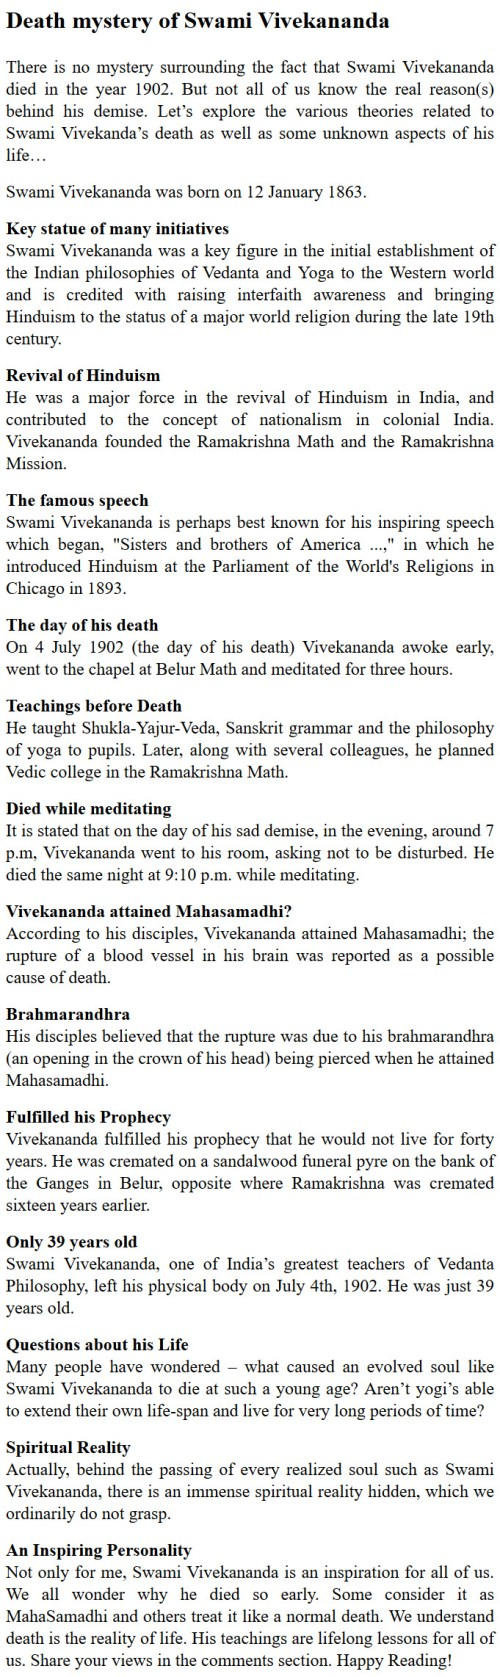 Cause of death of Vivekananda